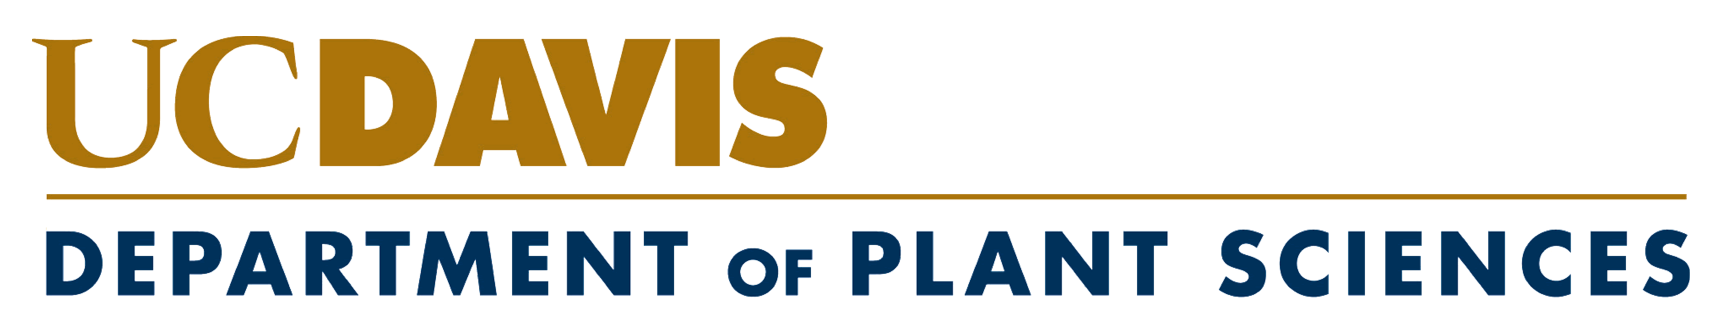 plant sciences logo